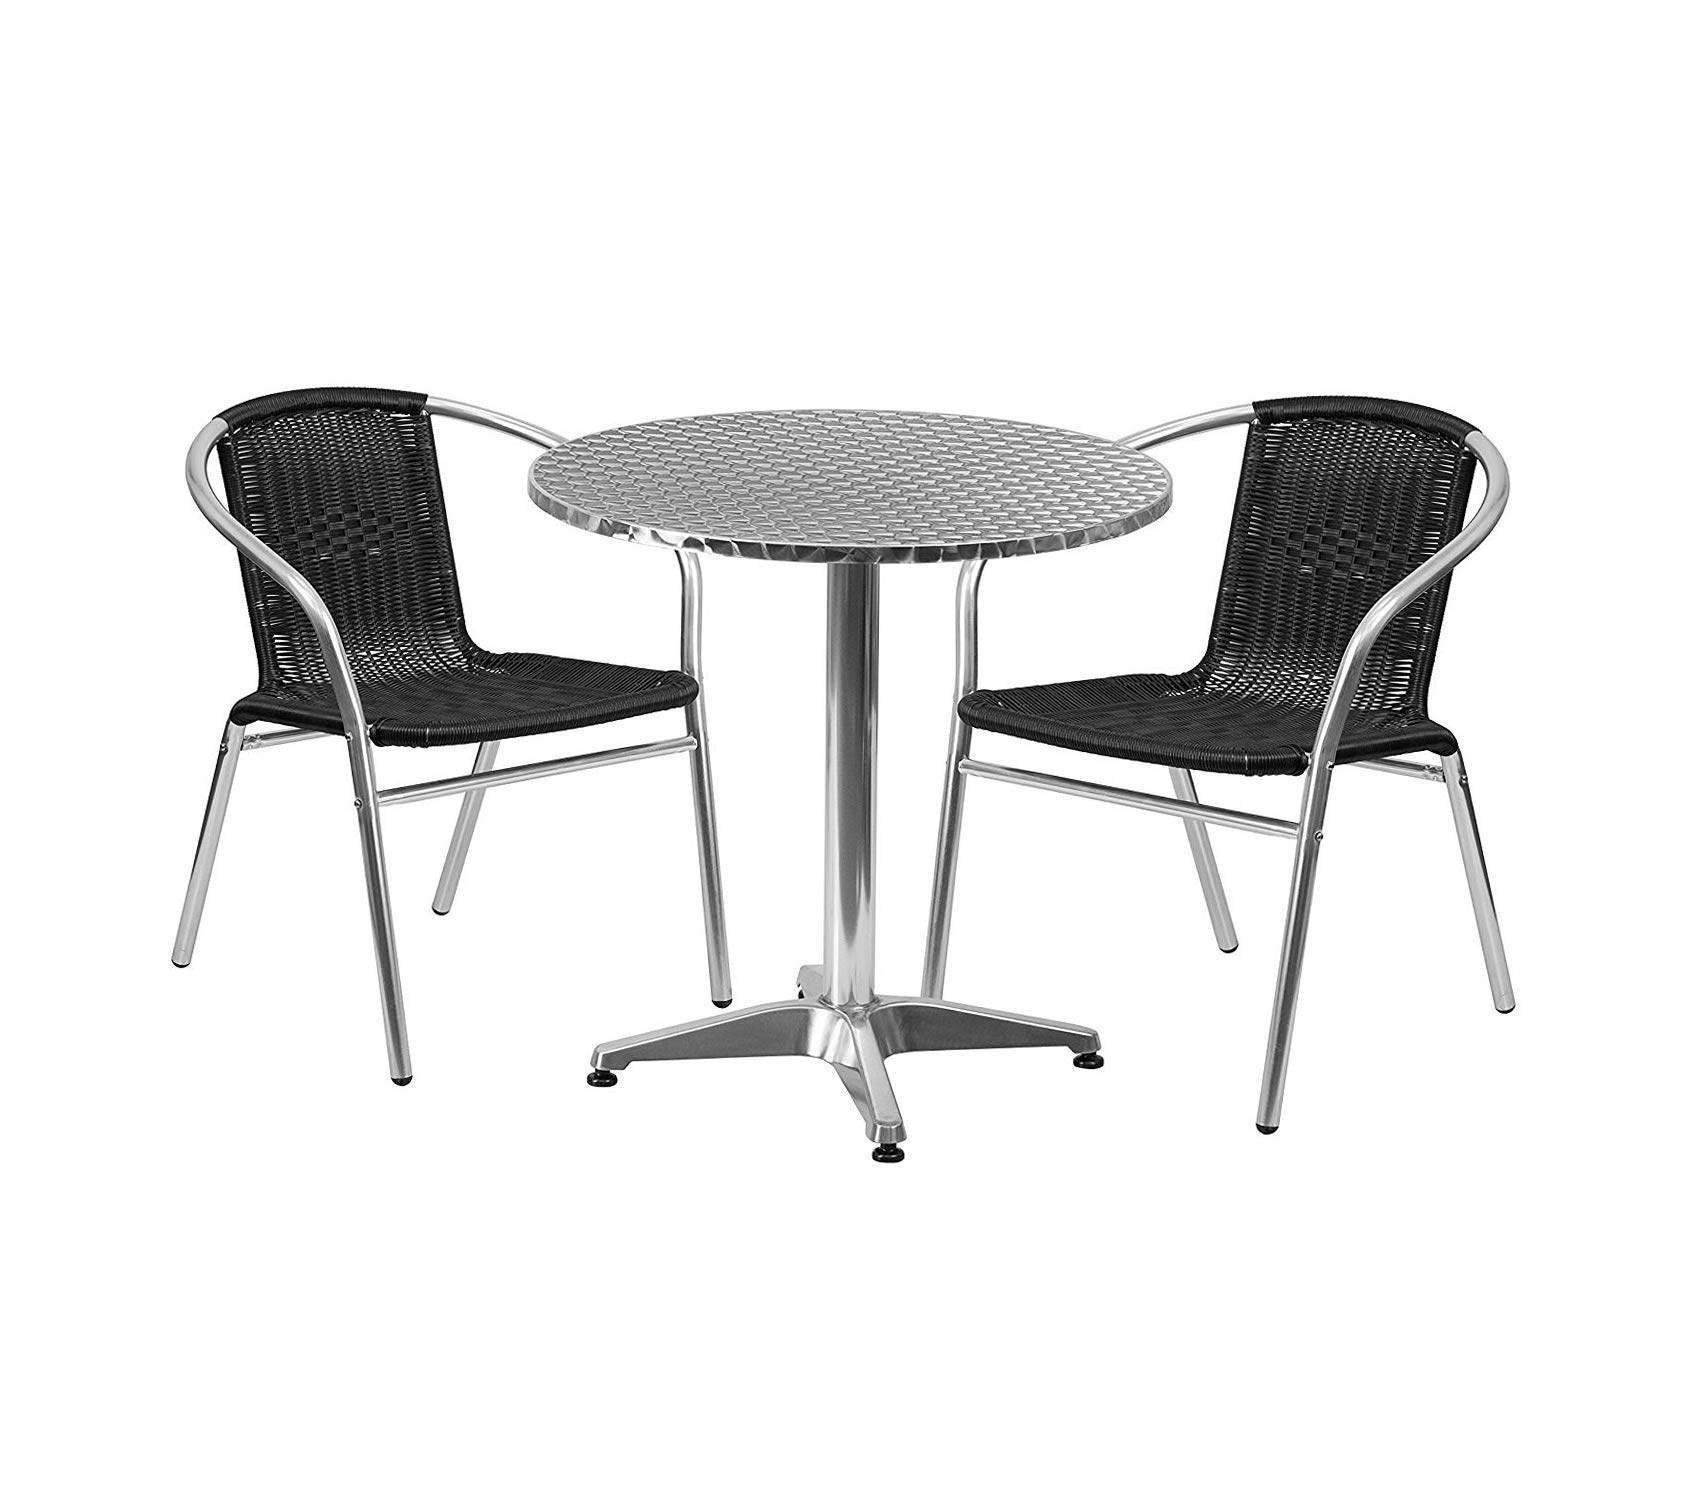 Office Home Furniture Premium TLH-ALUM-28RD-020BKCHR2-GG Round Aluminum Indoor-Outdoor Table with 2 Black Rattan Chairs, 27.5''